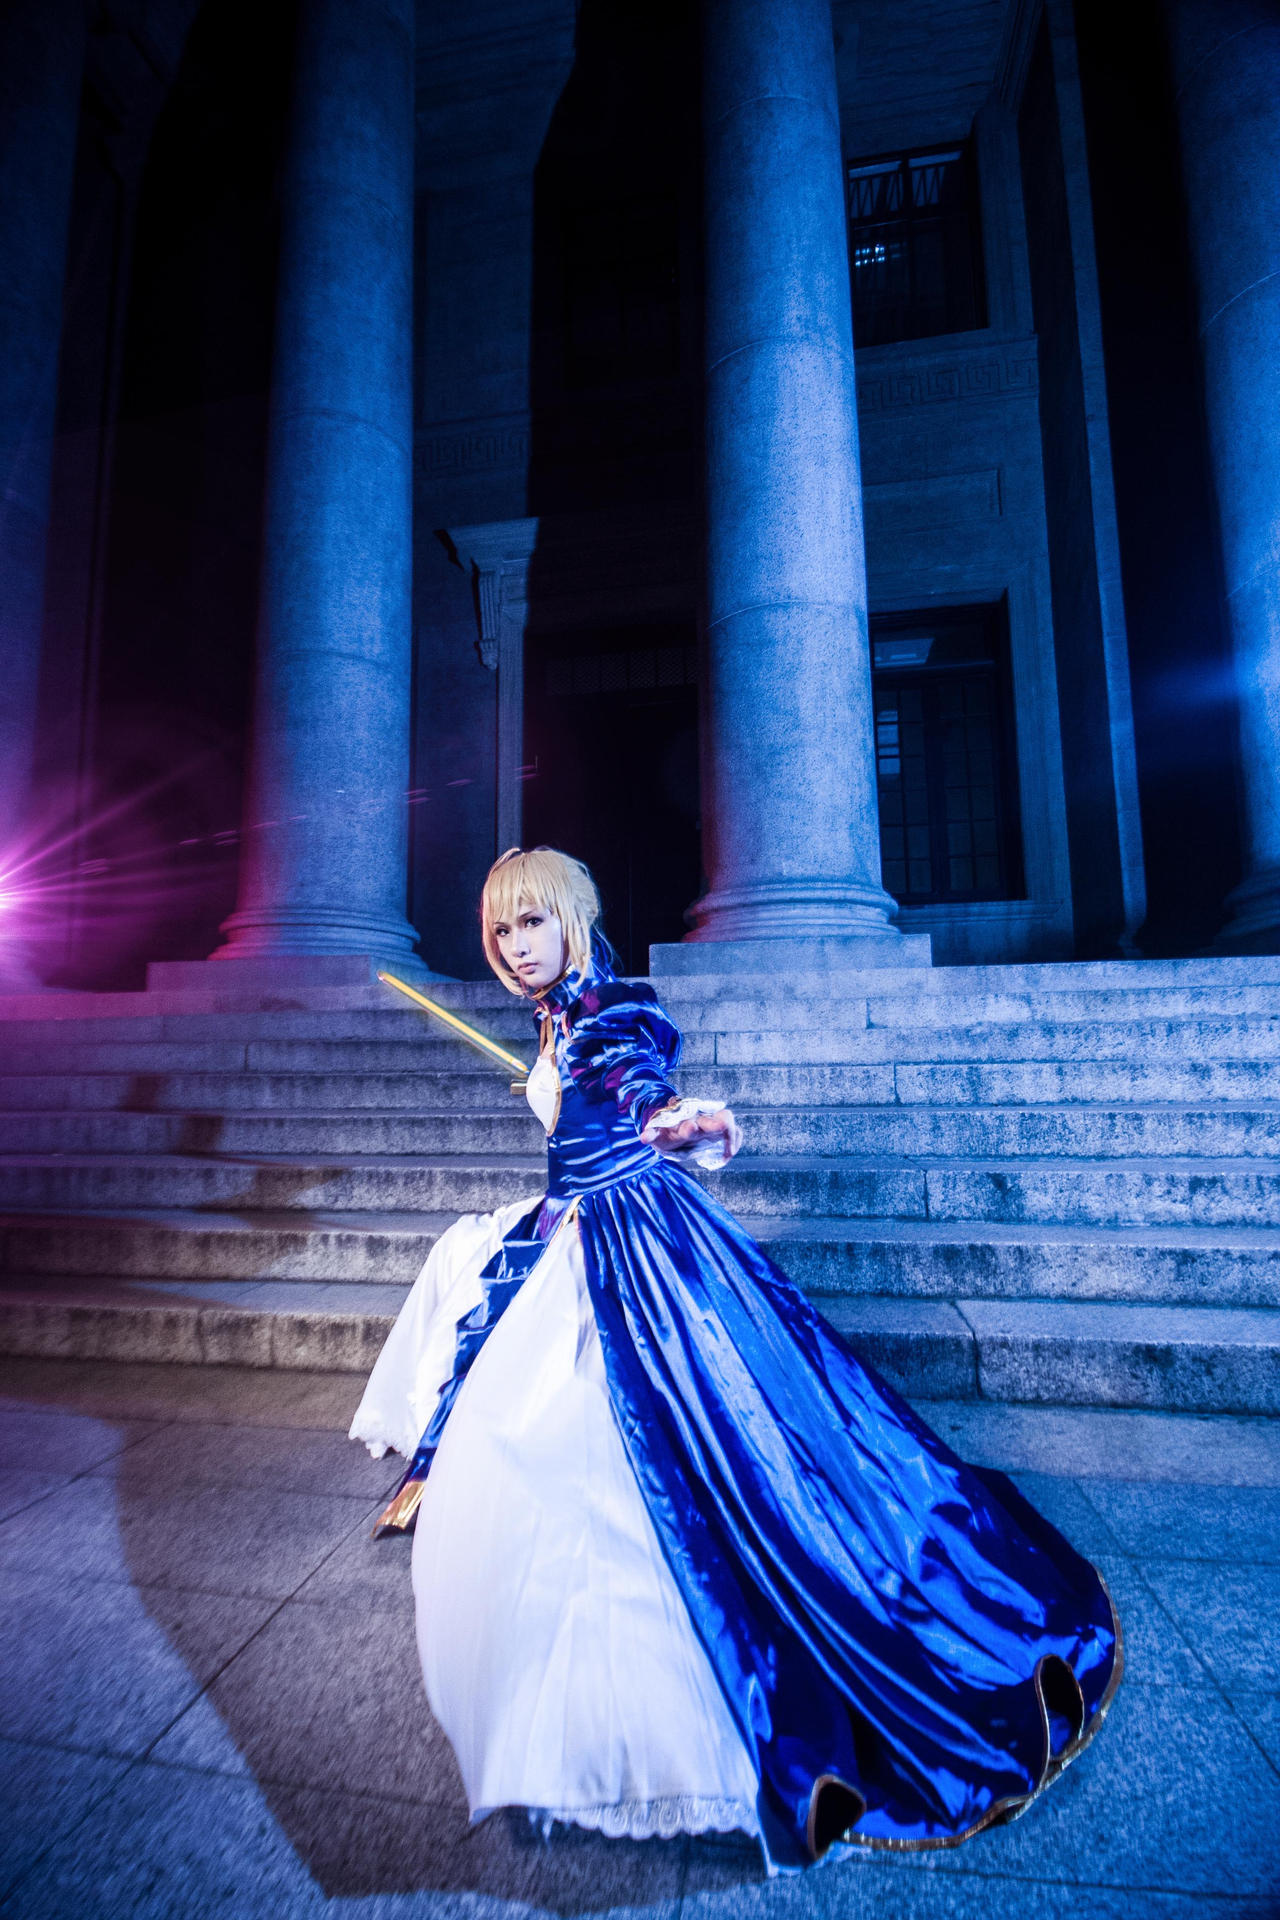 Fate Stay Night/Fate Zero Saber blue gown by DeutschGreen